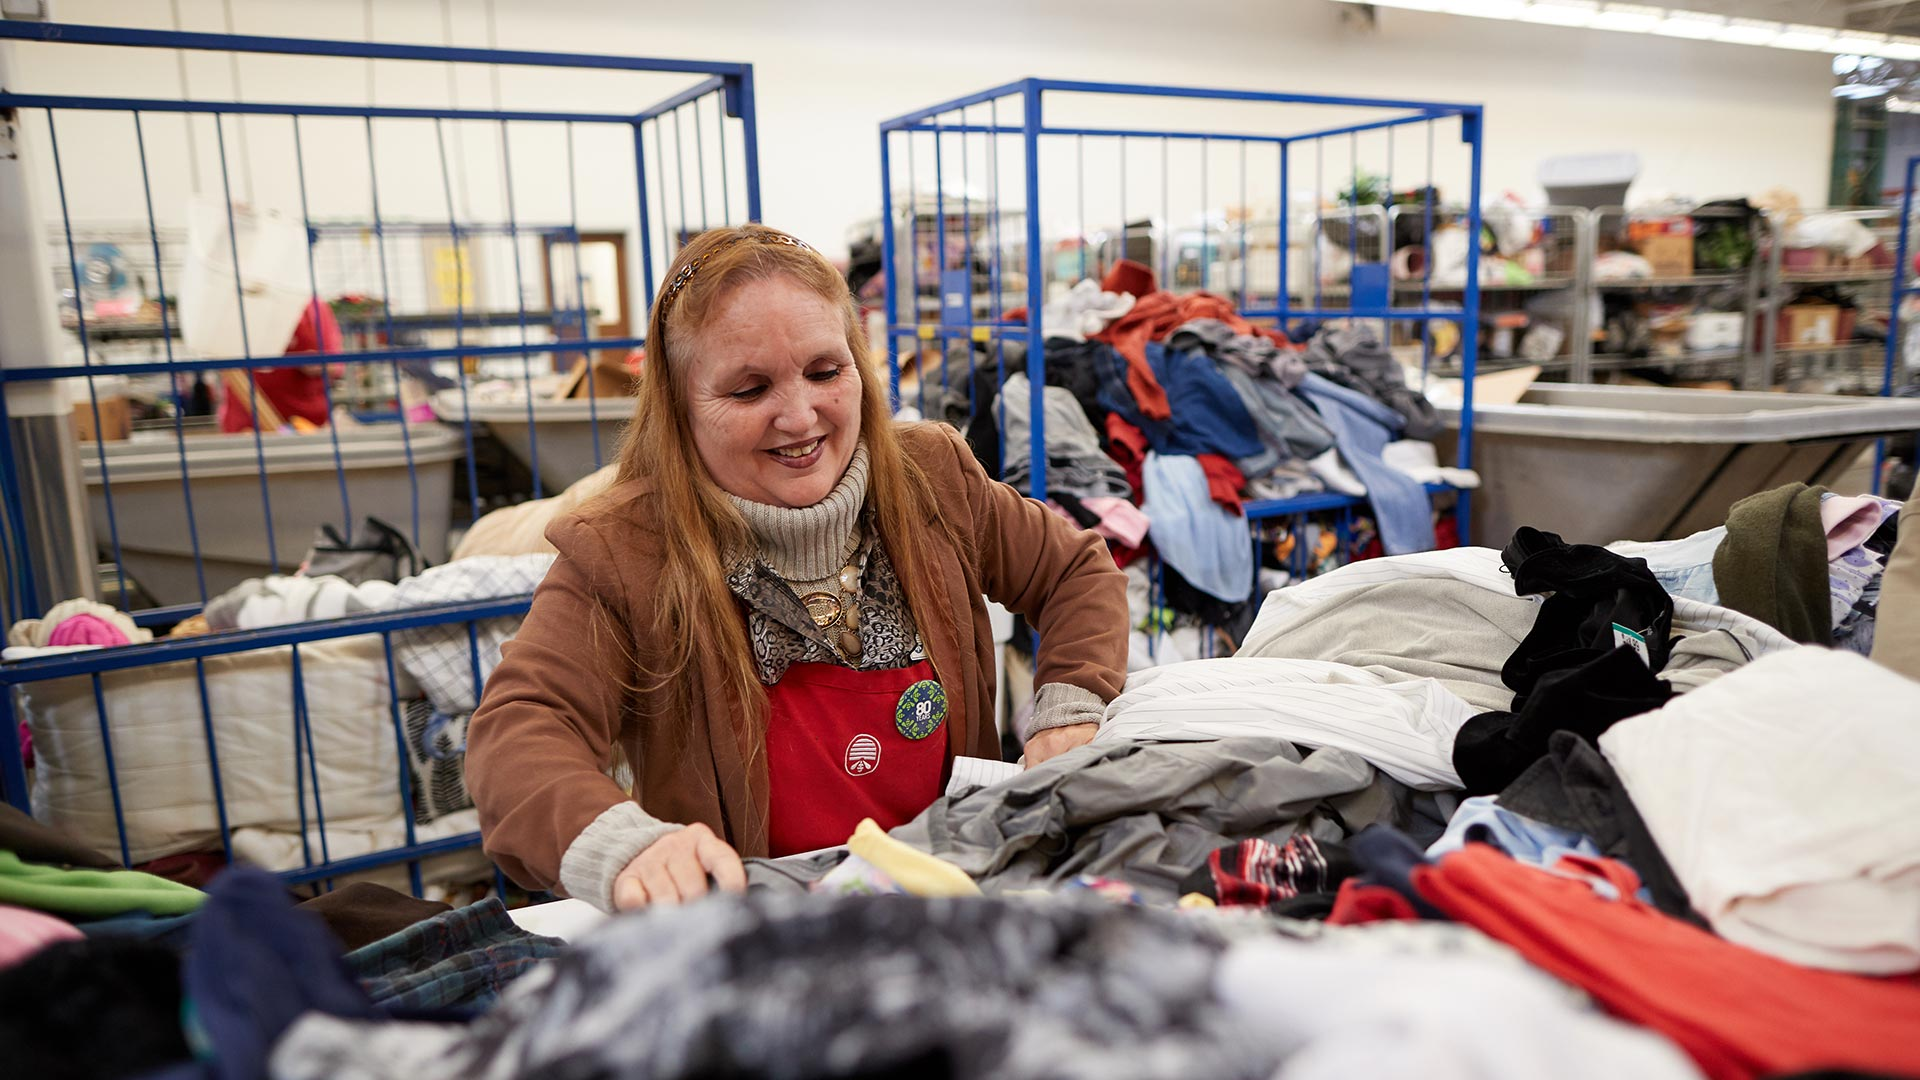 Associate Janice sorts clothes at Deseret Industries